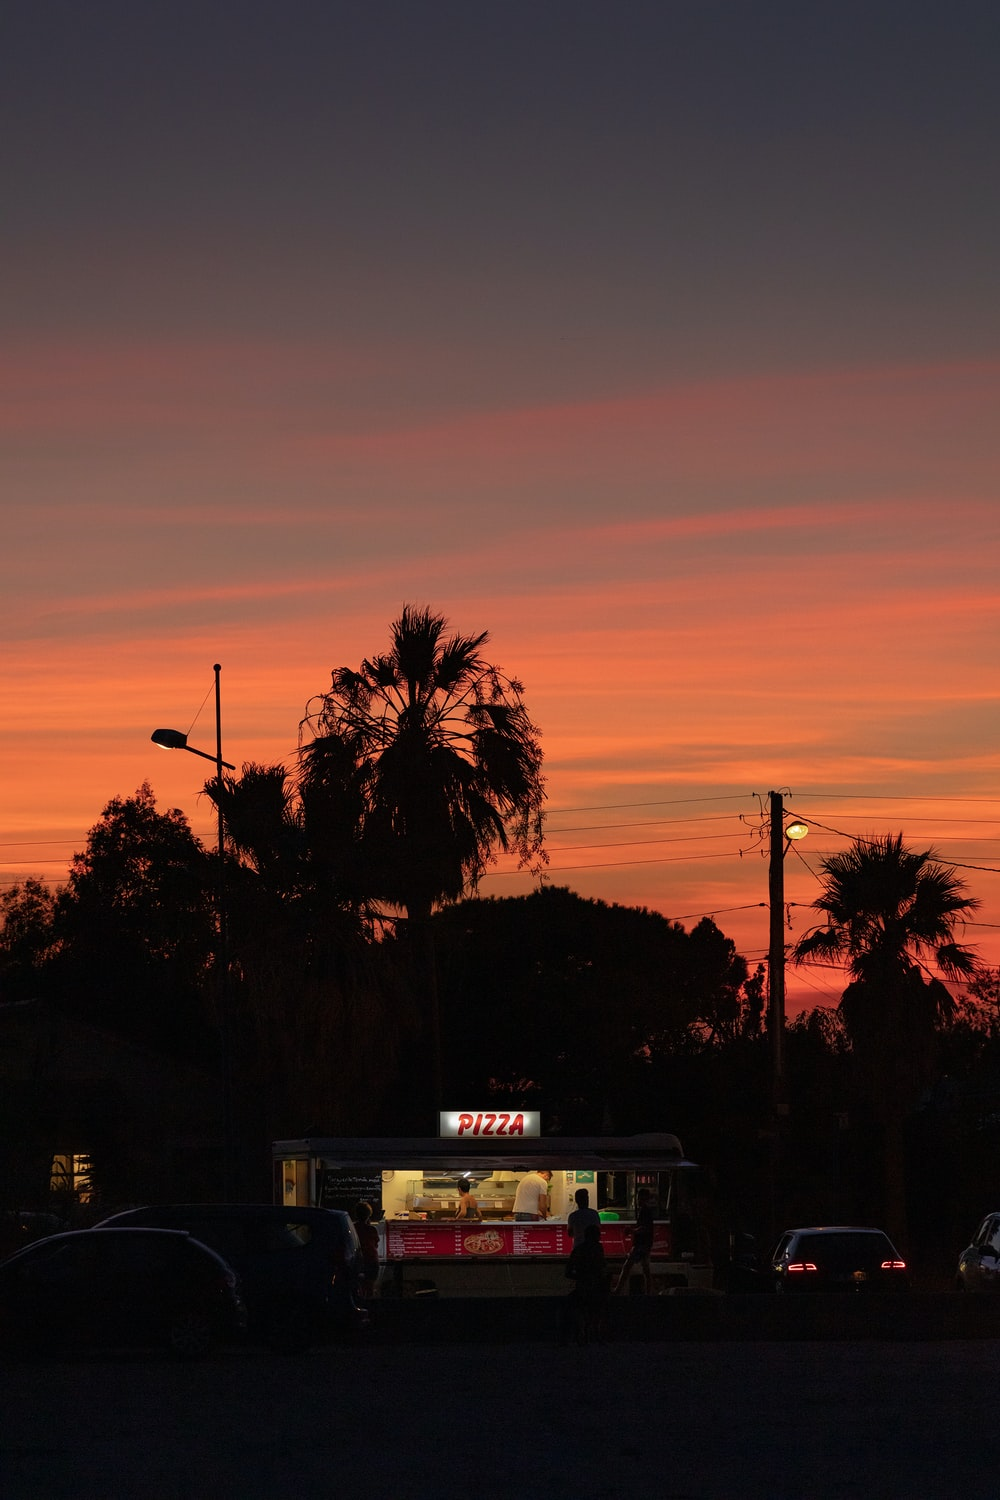 palm tree near white and black bus during sunset